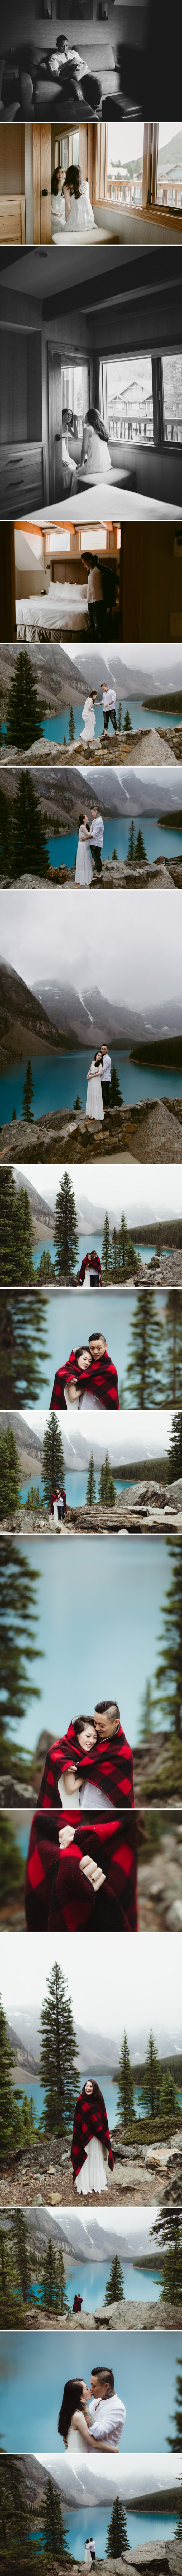 moraine lake elopement | ©The Paper Deer Photography | thepaperdeer.ca